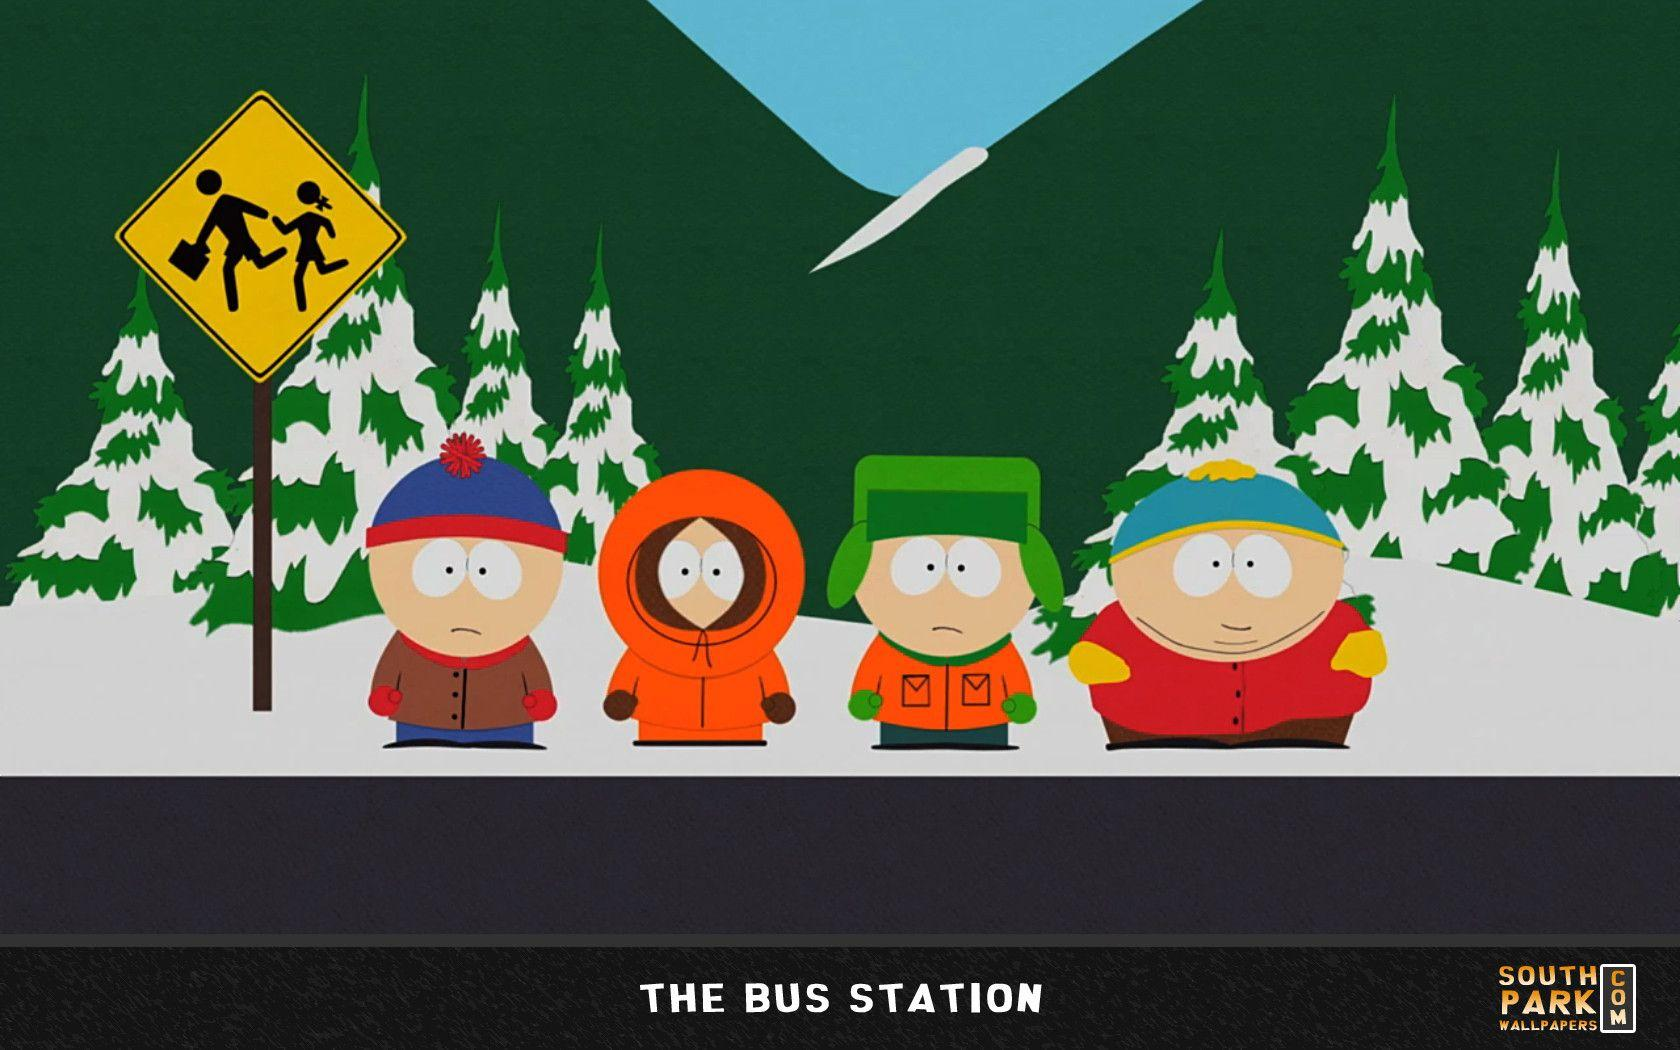 Funny South Park Wallpapers With Butters Images & Pictures - Becuo